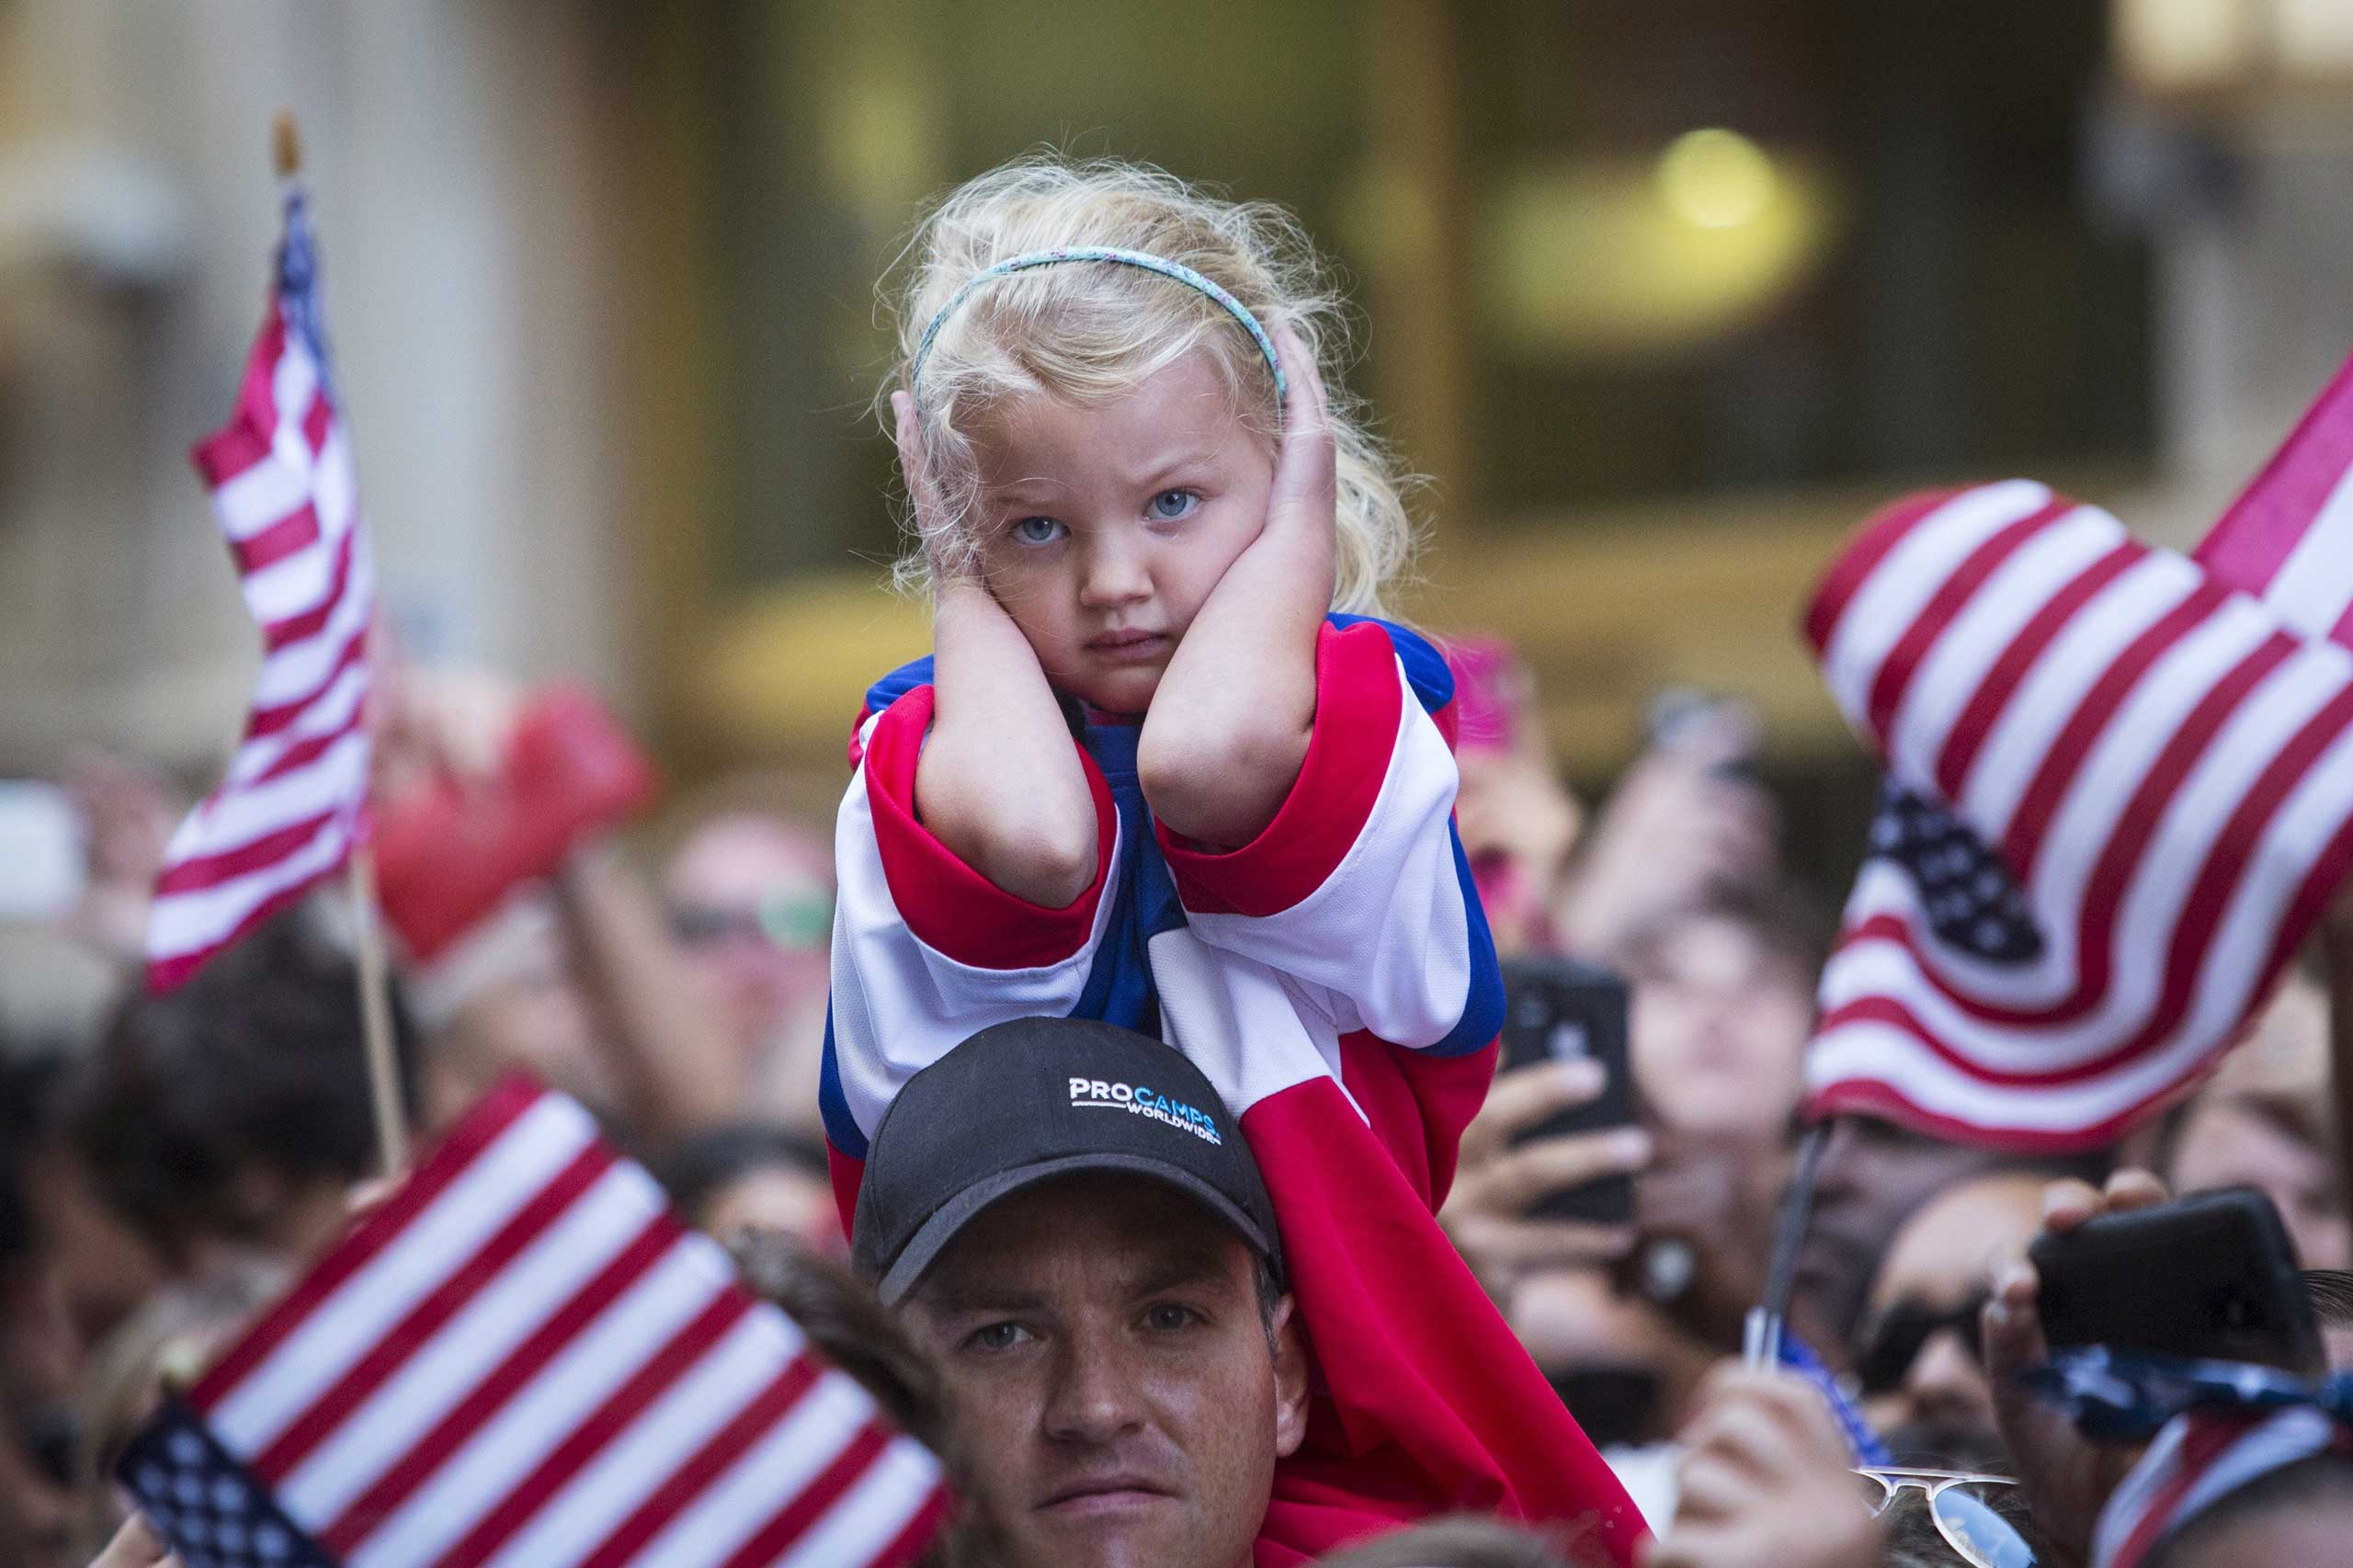 A young fan of the U.S. women's soccer team blocks her ears during the ticker tape parade to celebrate their World Cup final win over Japan on Sunday, in New York on July 10, 2015.